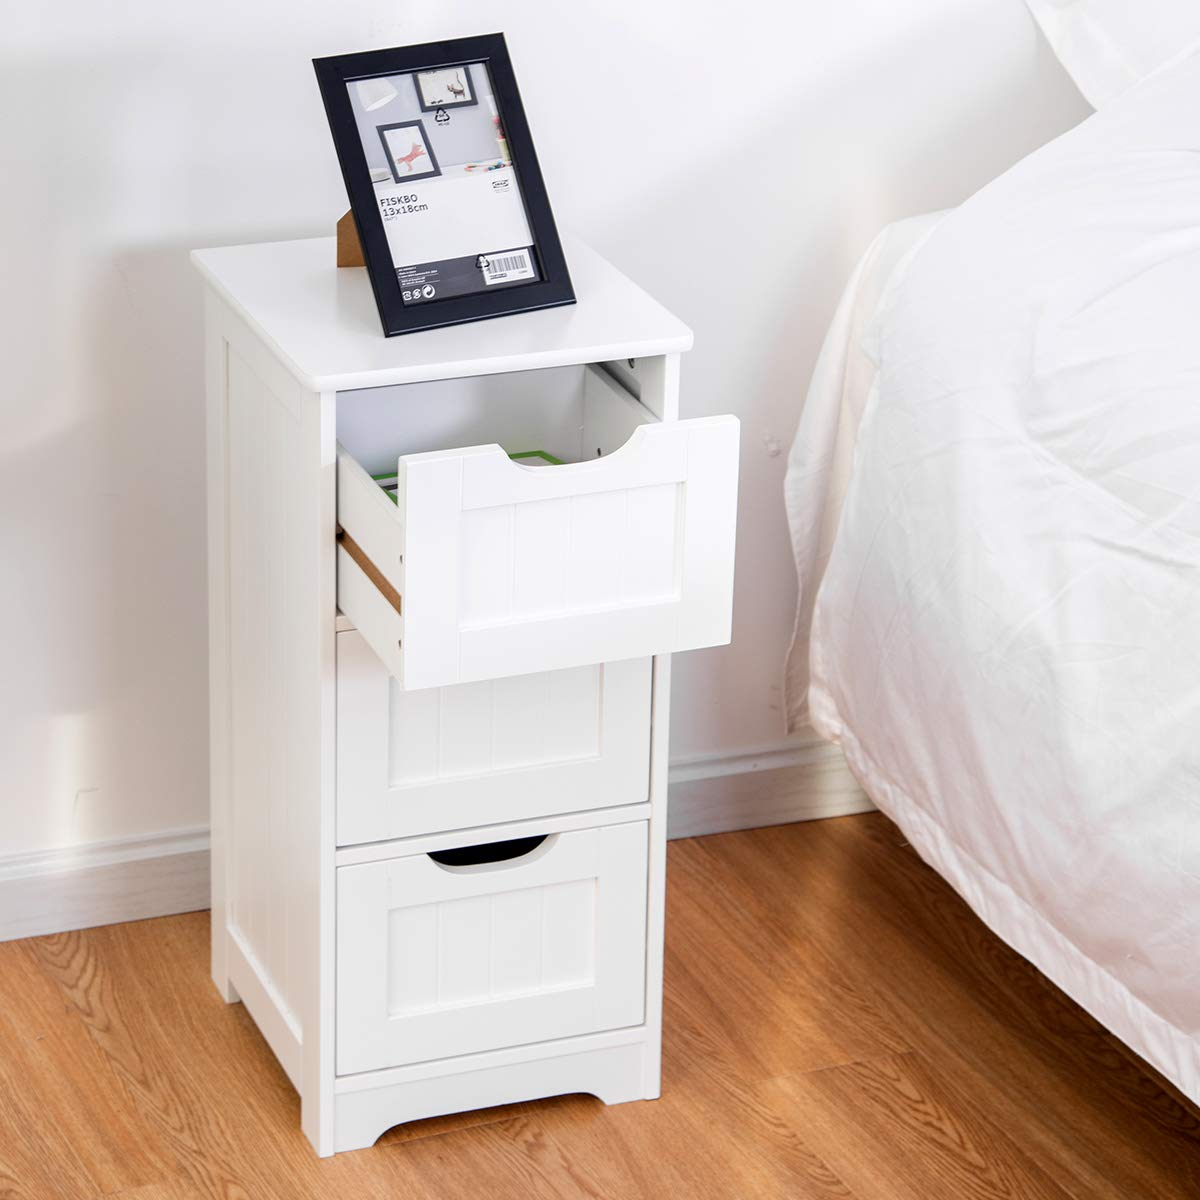 Wooden Storage Cabinet for Home